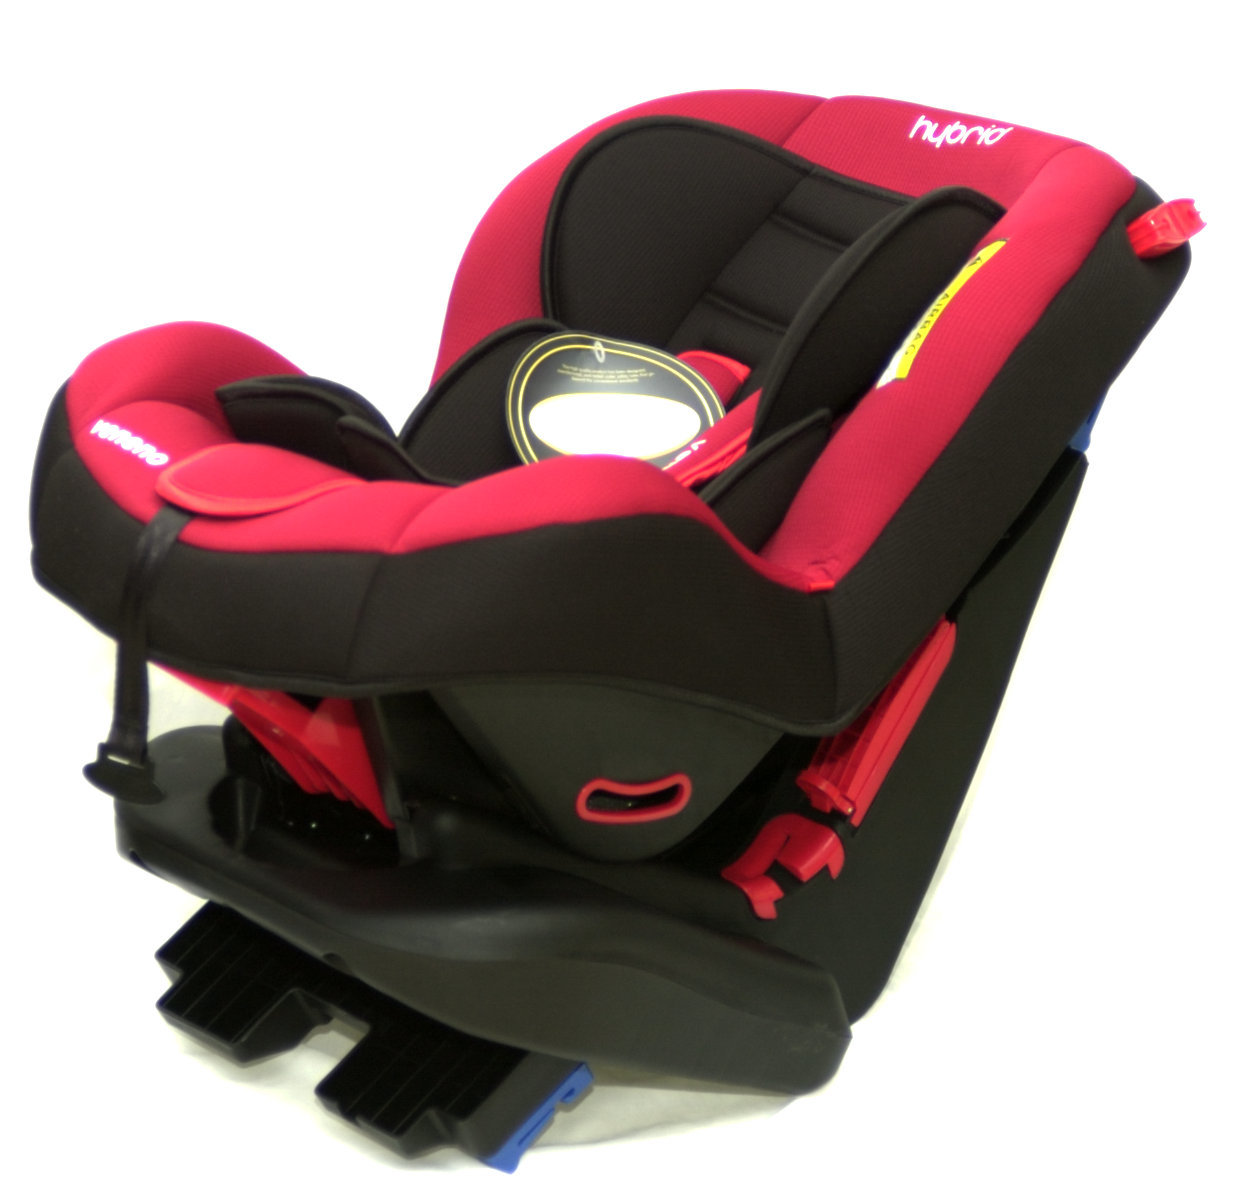 hybrid veneno convertible car seat bump n bambino. Black Bedroom Furniture Sets. Home Design Ideas